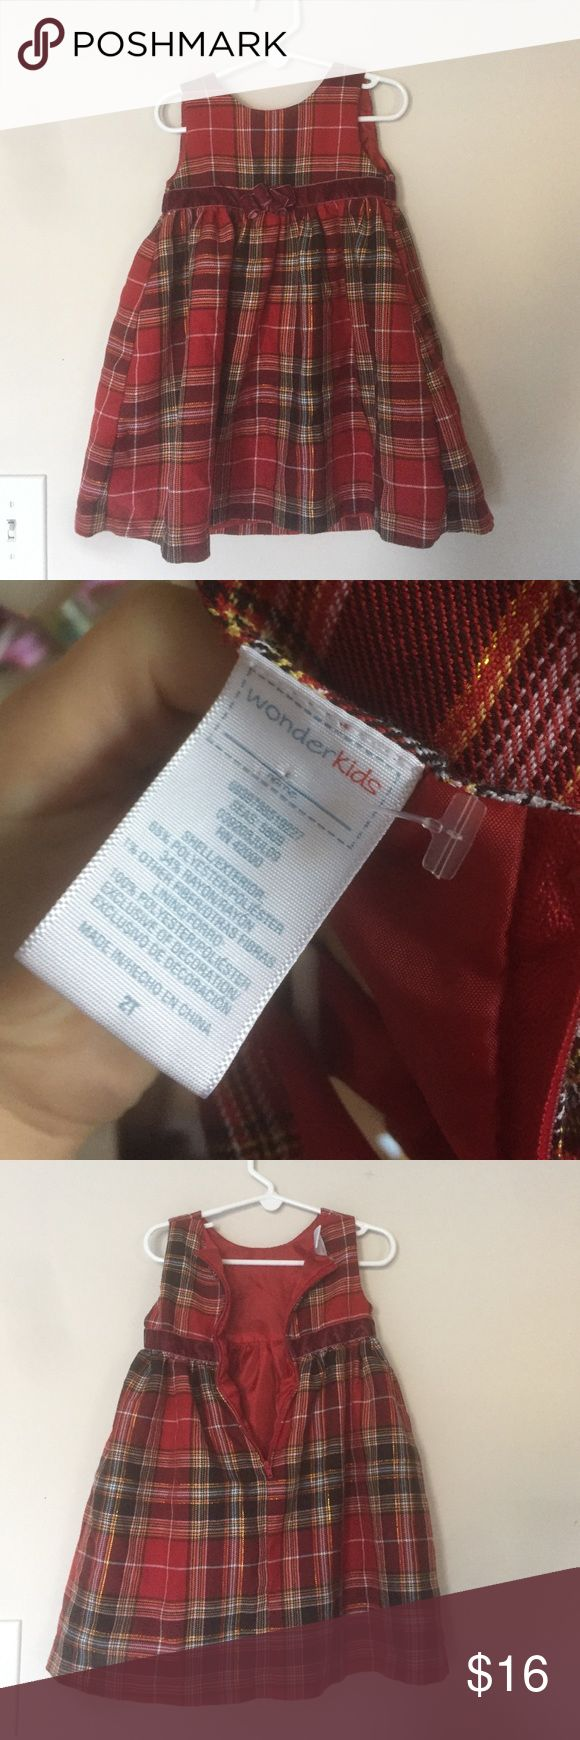 NWOT toddler holiday dress Excellent condition. NWOT. Dresses